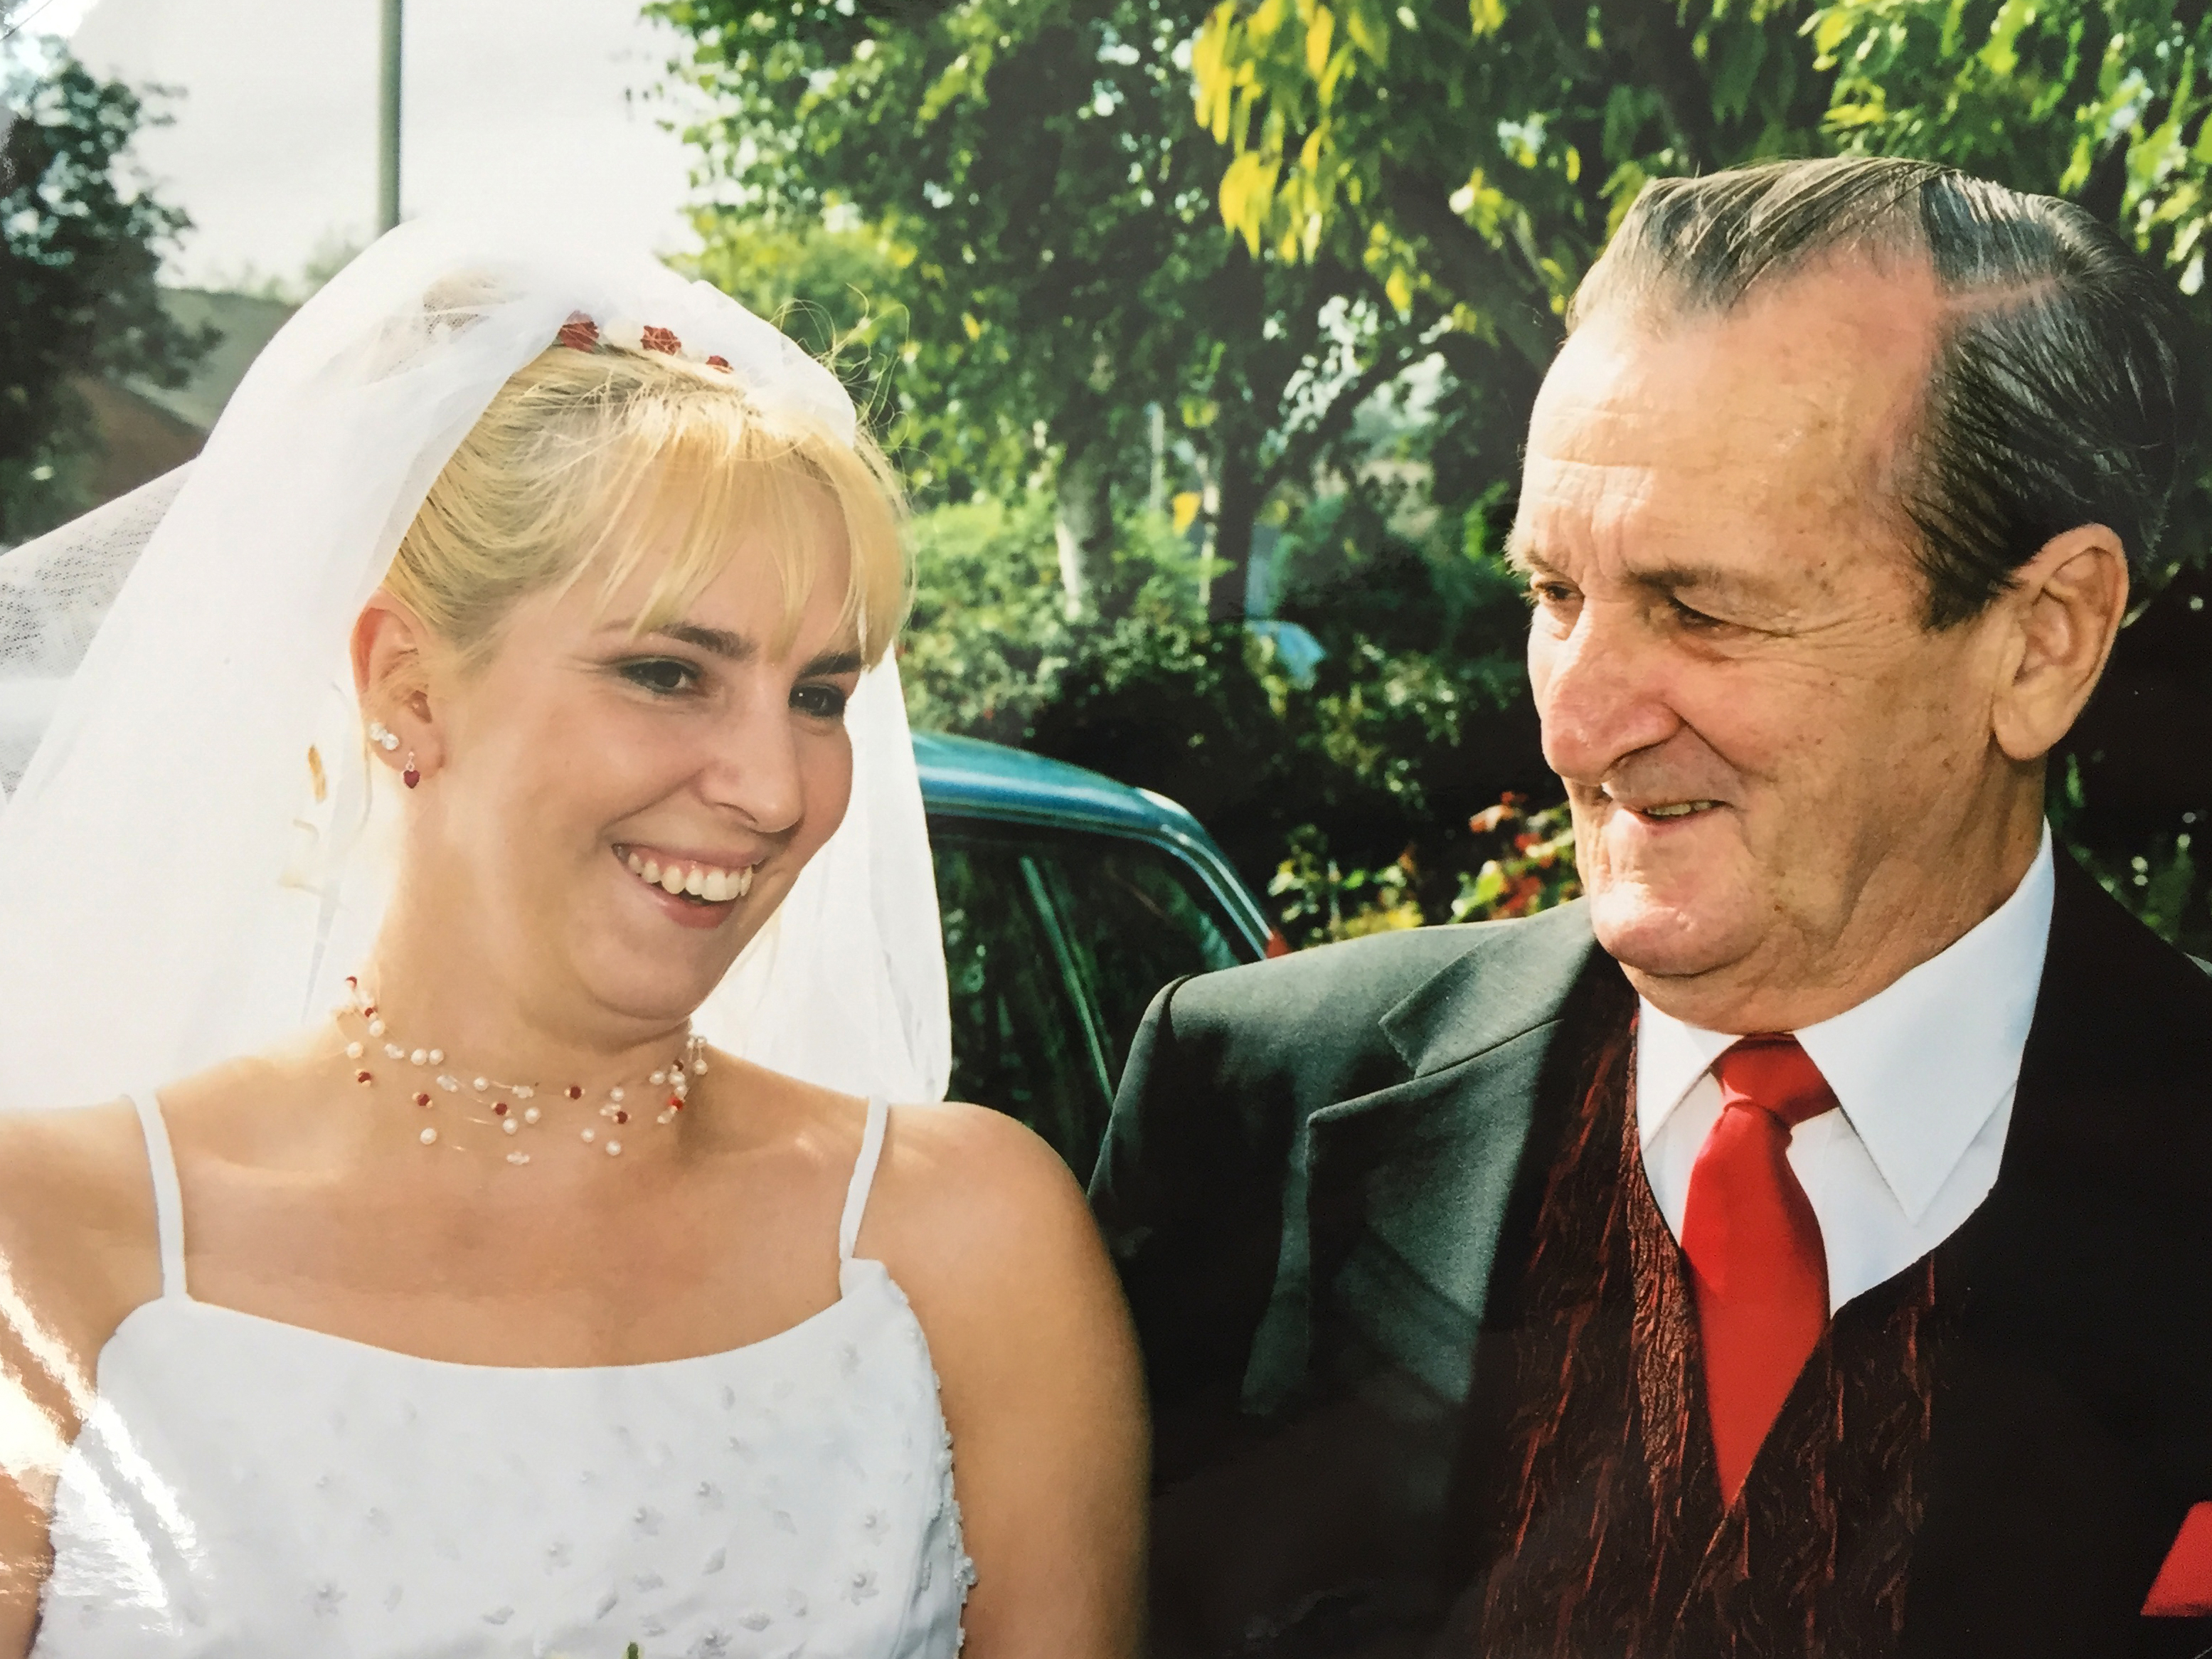 Father and daughter on wedding day